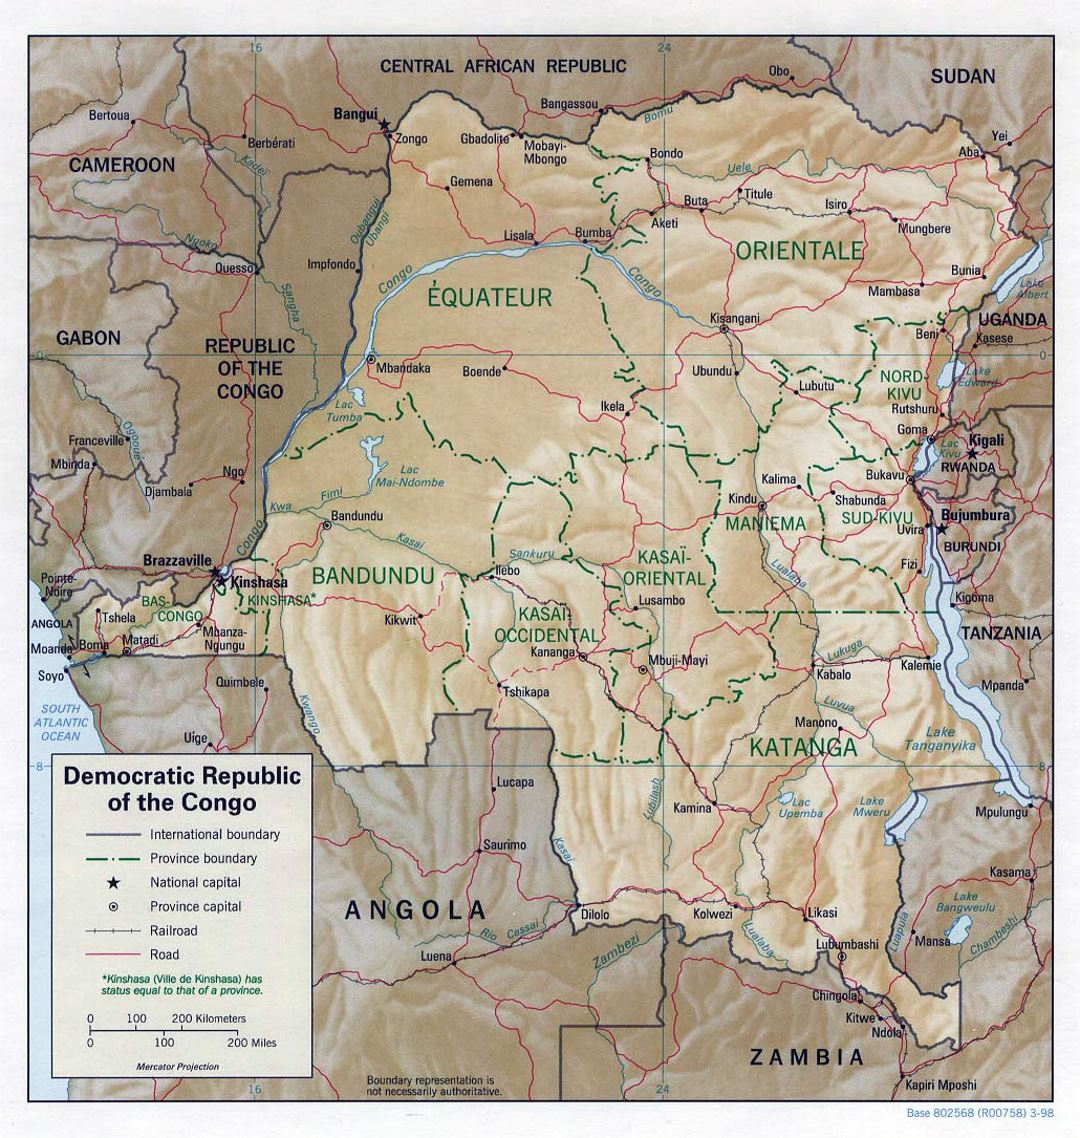 Detailed political and administrative map of Congo Democratic Republic with relief, roads, railroads and major cities - 1998